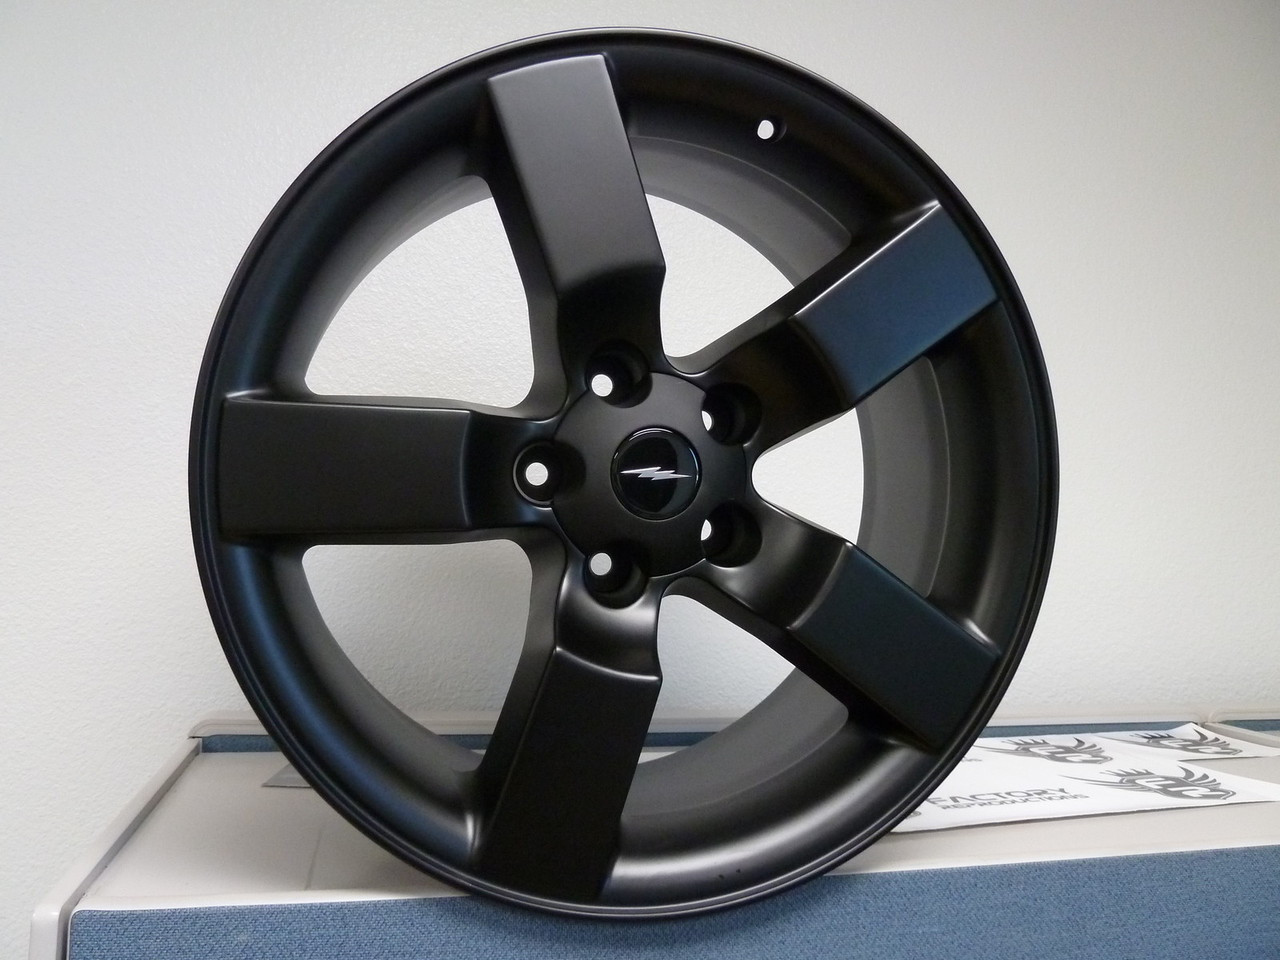 wheels f150 ford lightning rims expedition alloy 20x9 satin tires gloss fits wheel quick